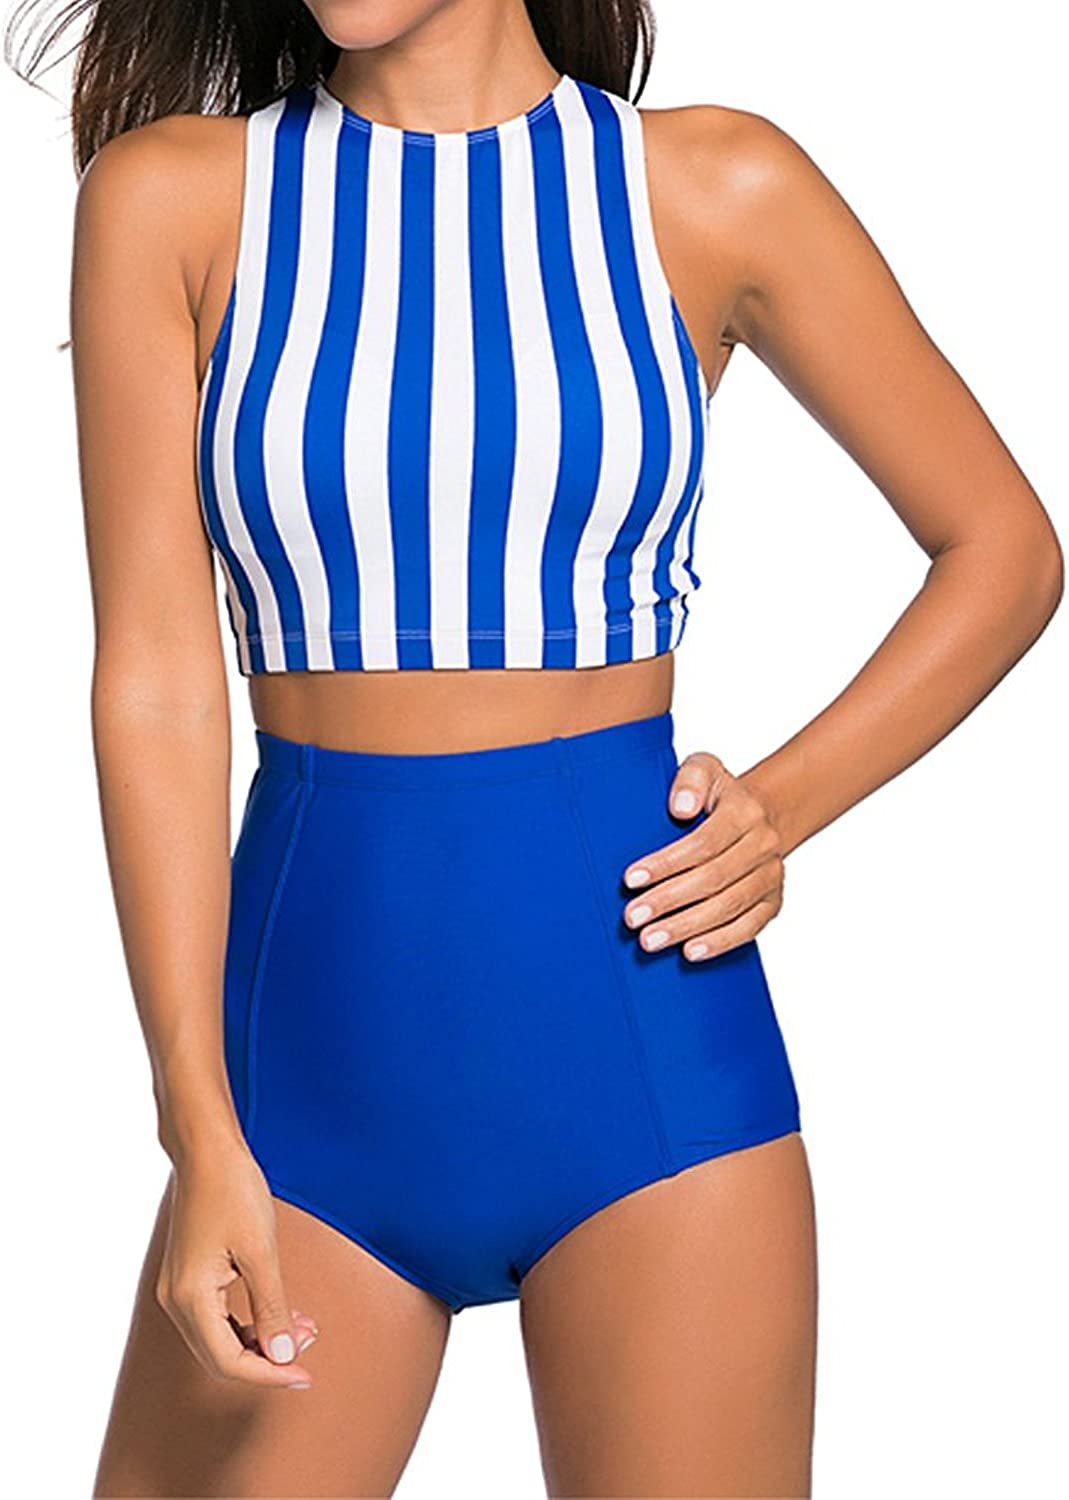 Blue & White Stripe Padded Tankinis Bathing Suit with High Waisted Sport Shorts